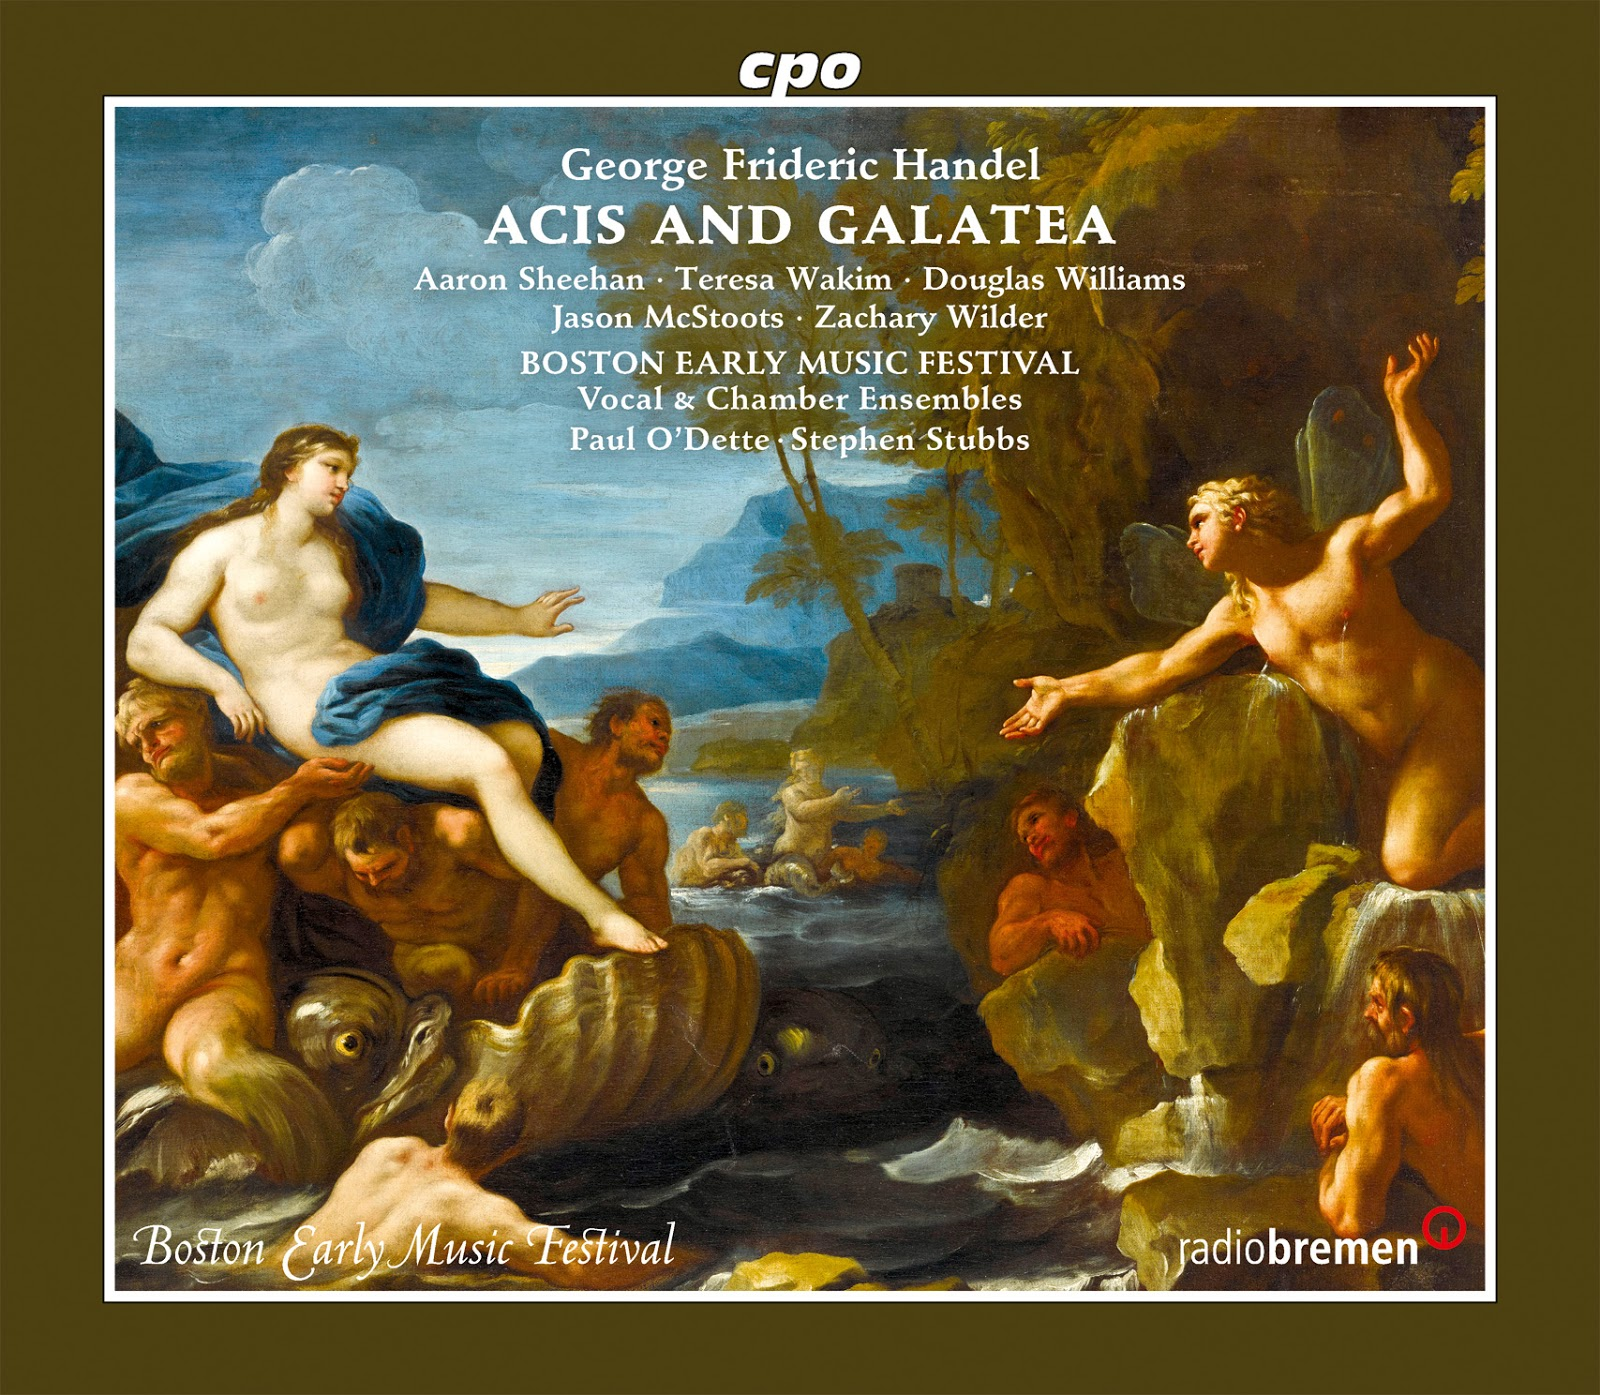 IN REVIEW: Georg Friedrich Händel - ACIS AND GALATEA (cpo 777 877-2)